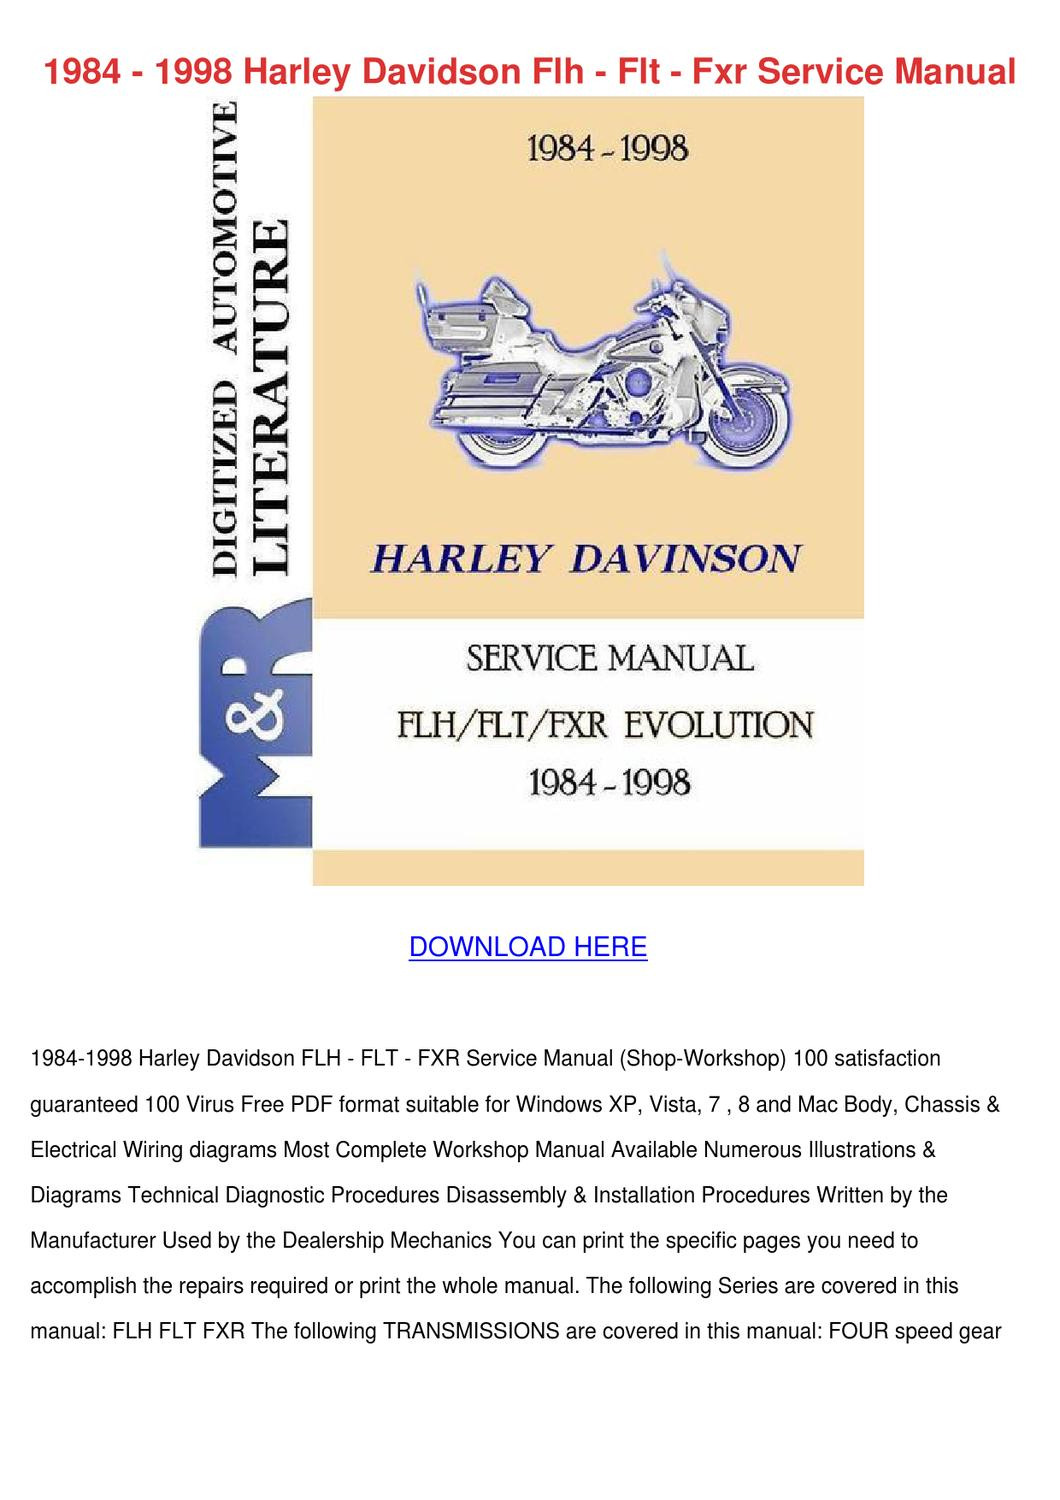 1996 Harley Sportster Wiring Diagram Free Download Books Of 1964 Flh 1984 1998 Davidson Flt Fxr Service By Elizabethcovey Issuu Rh Com